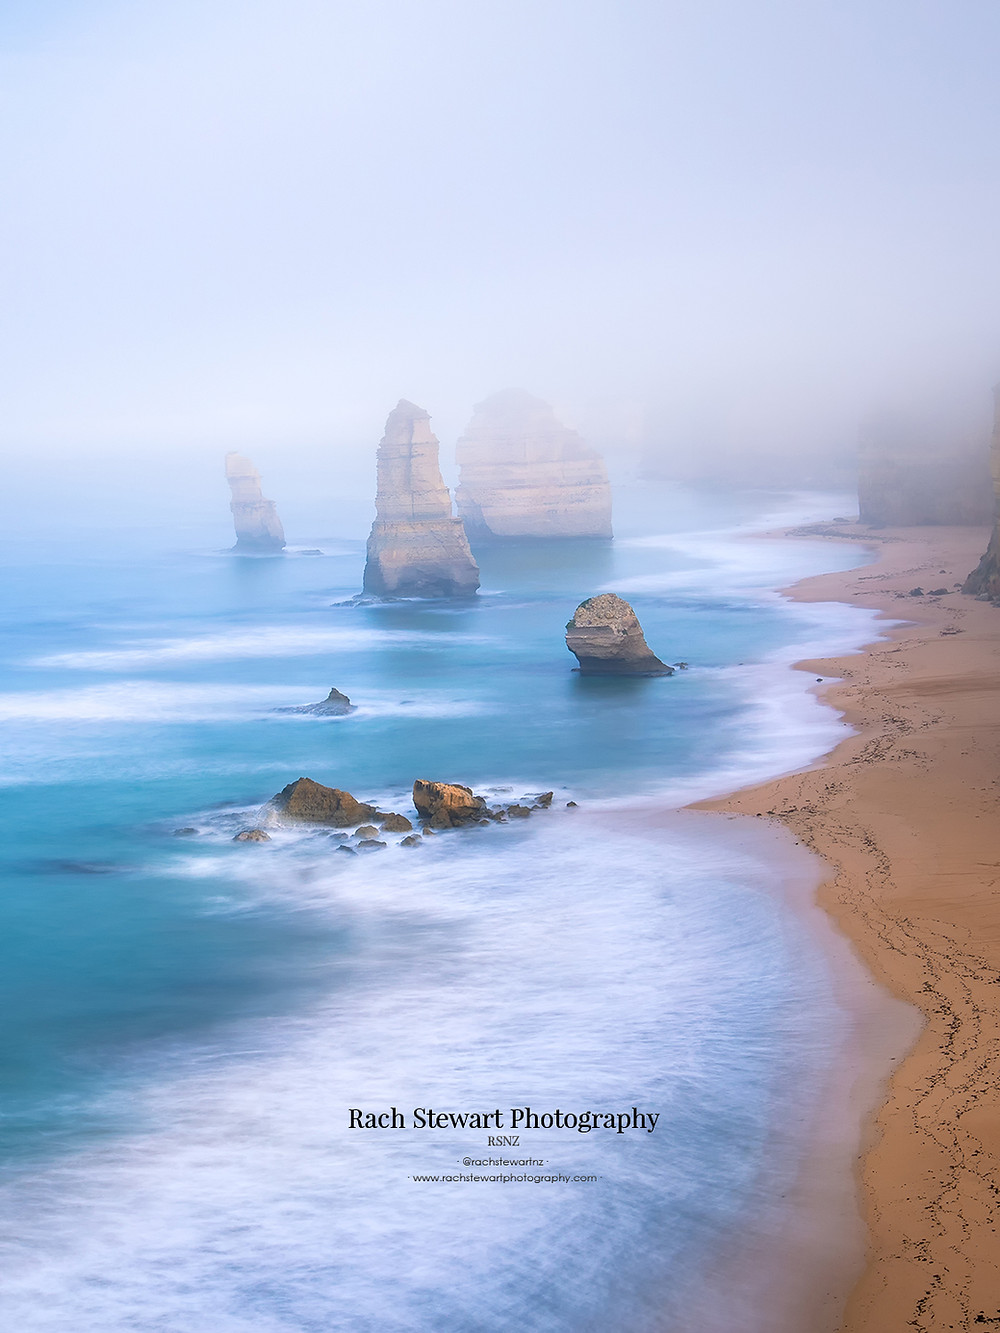 A close up view of the 12 Apostles from the lookout